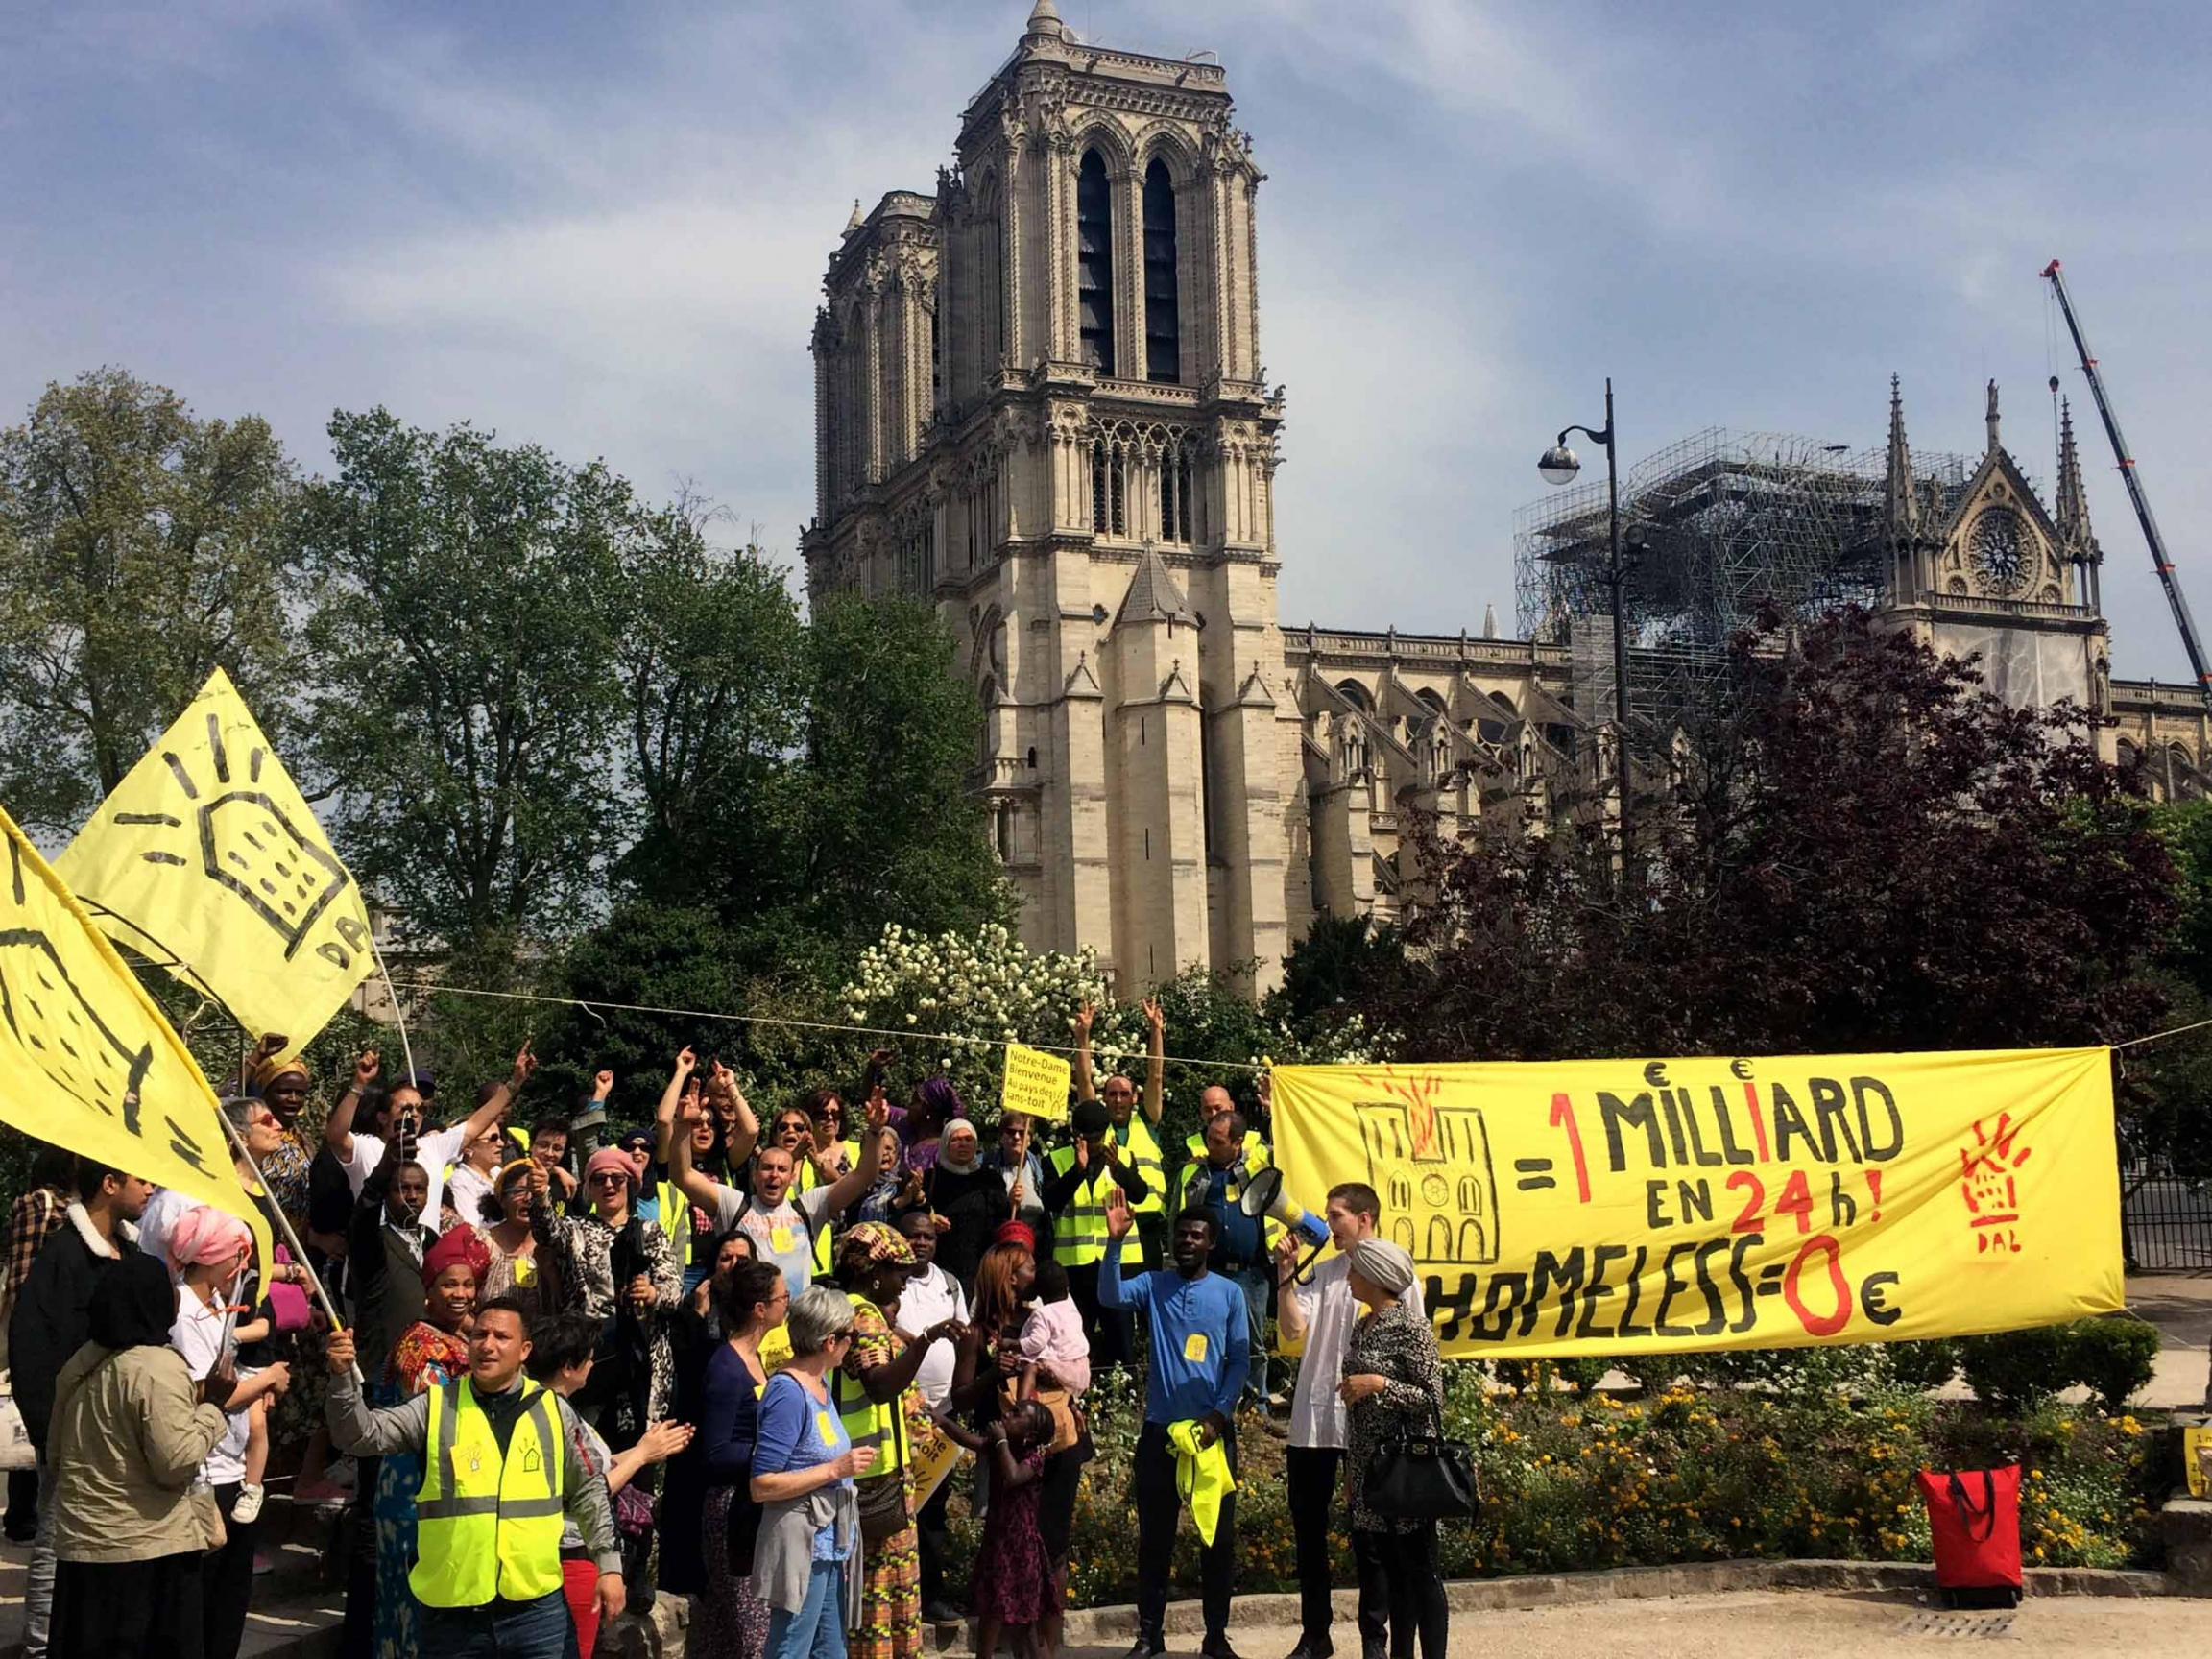 A crowd of people hold yellow signs and a banner. The towers of Notre-Dame are visible in the background.